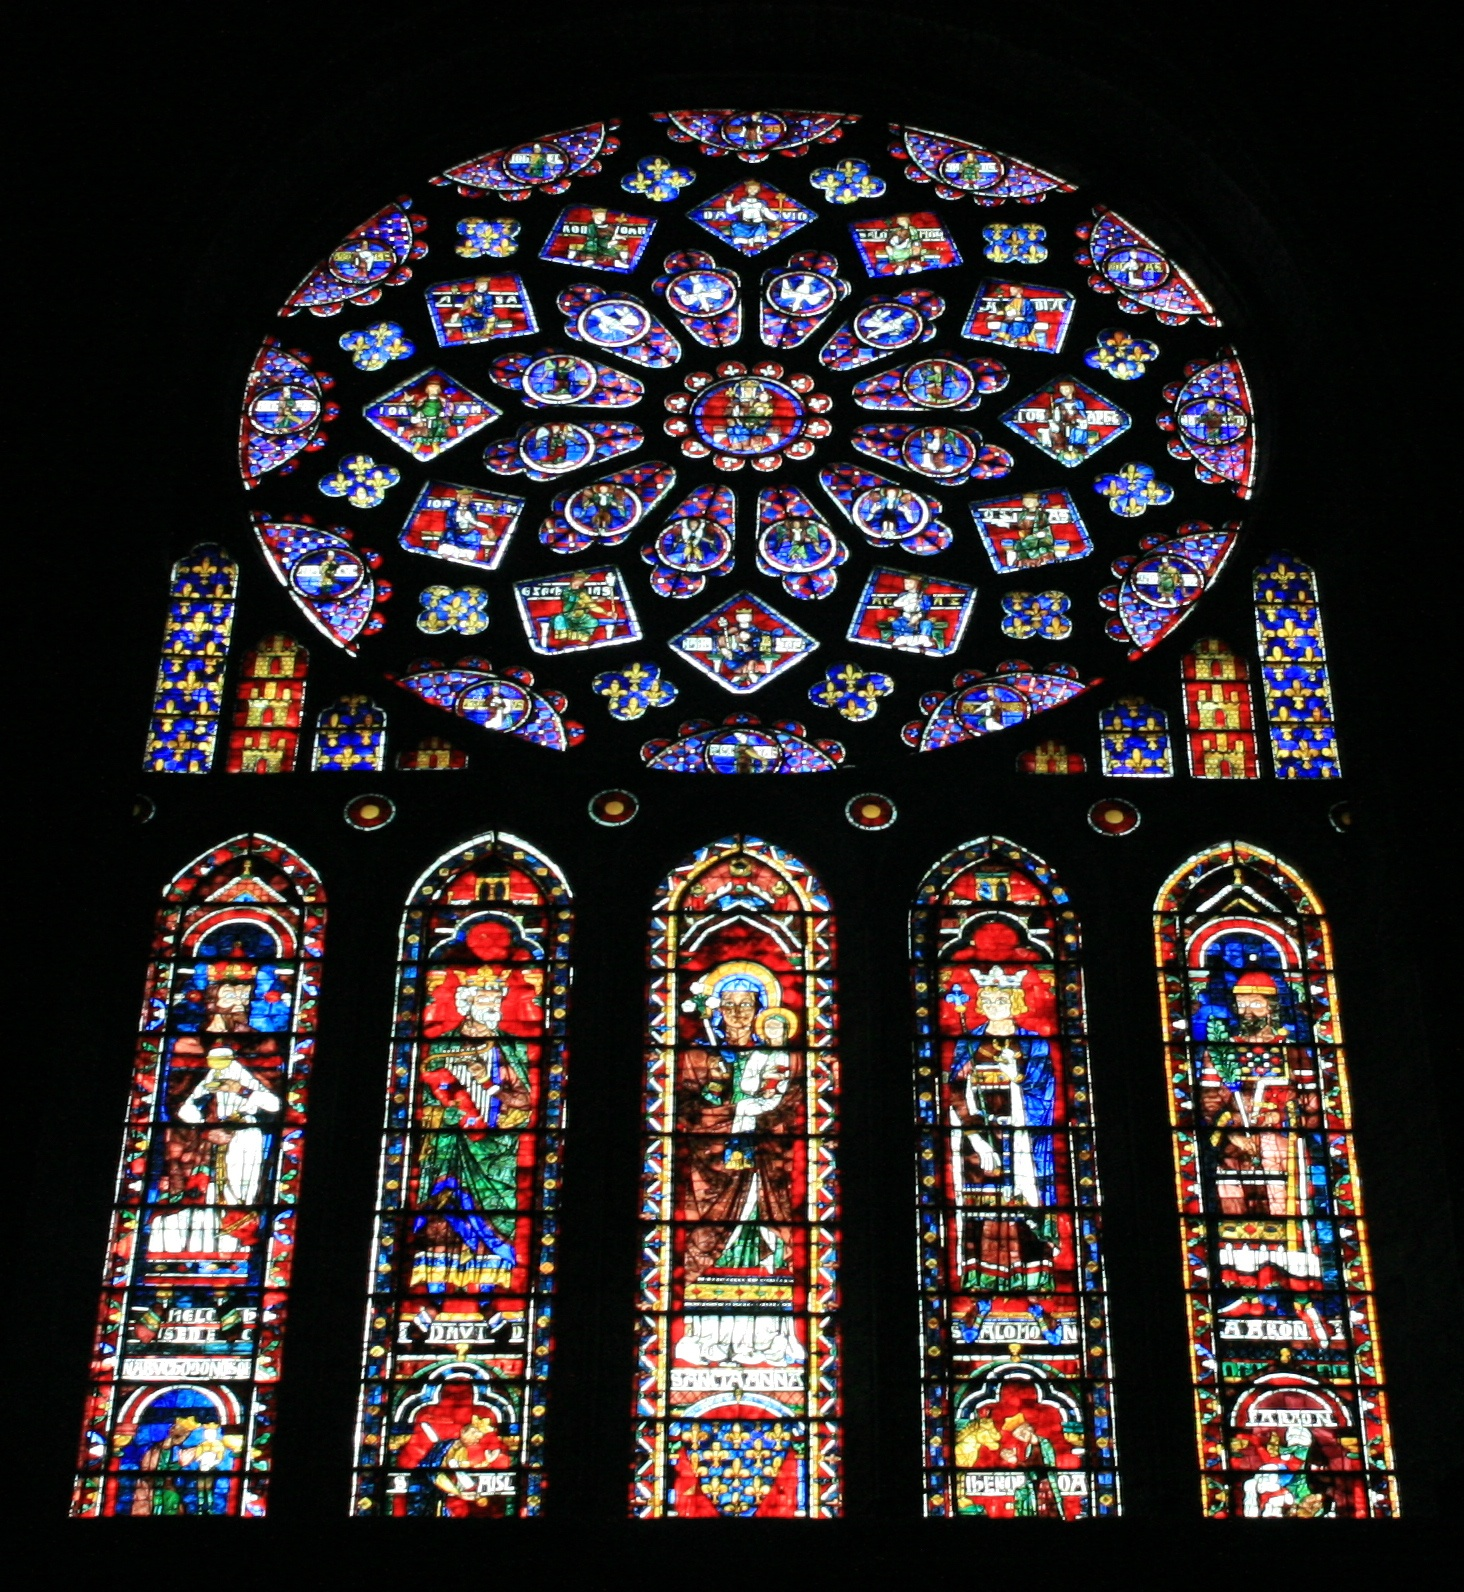 Chartres_Cathedral_North_Transept_North_Rose_Window_2007_08_31.jpg